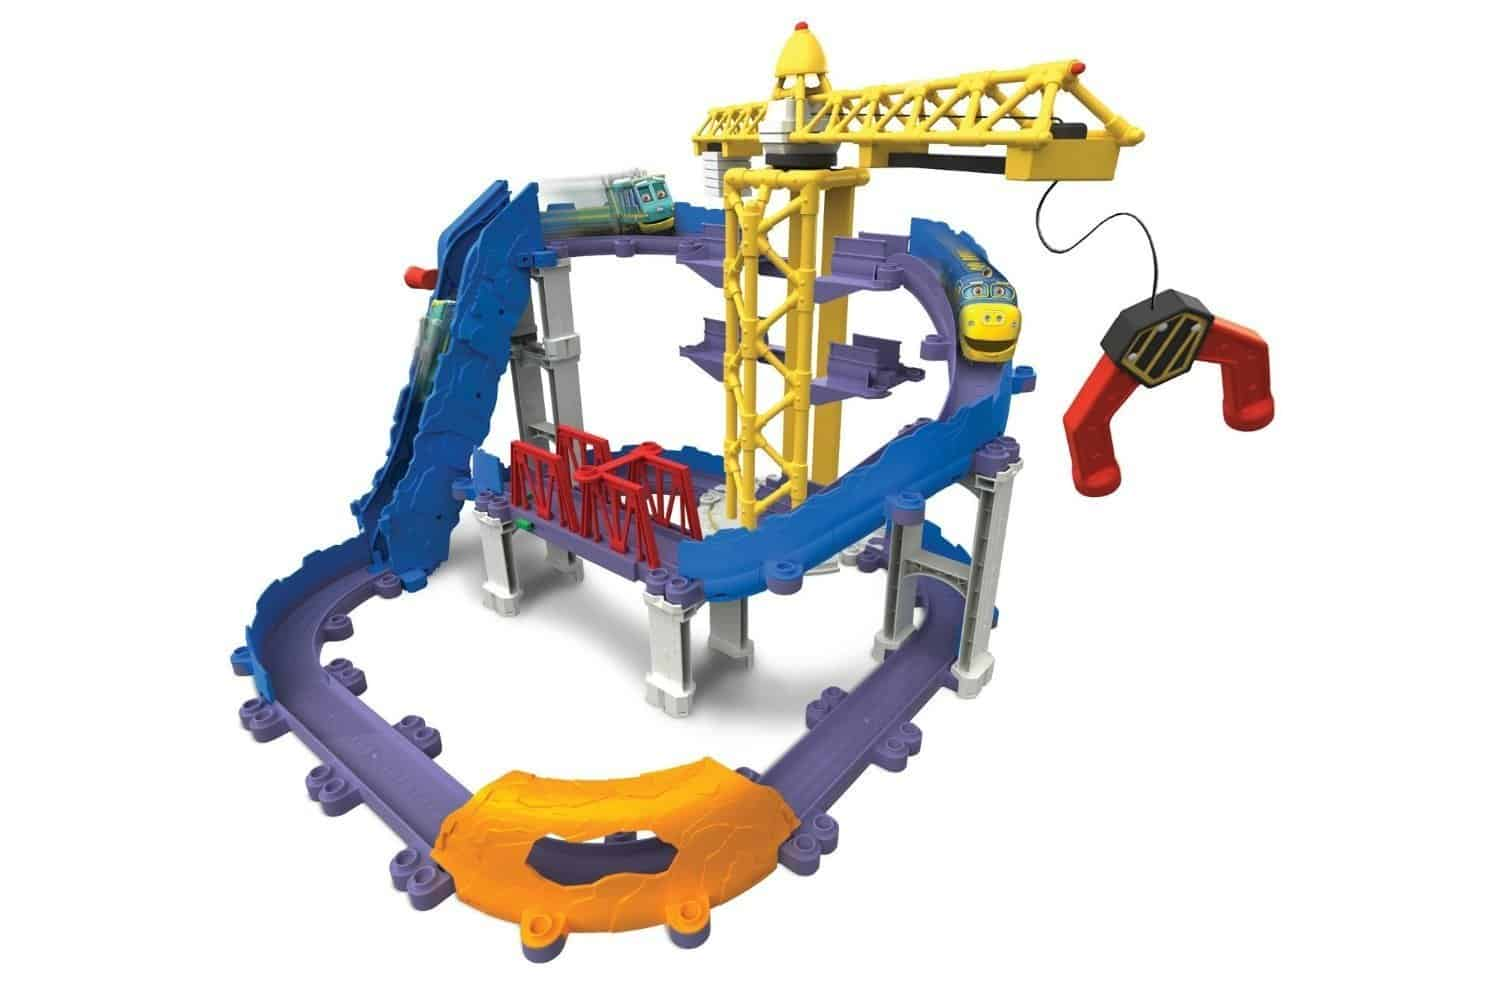 sc 1 st  Toy Train Center : chuggington train set table - pezcame.com